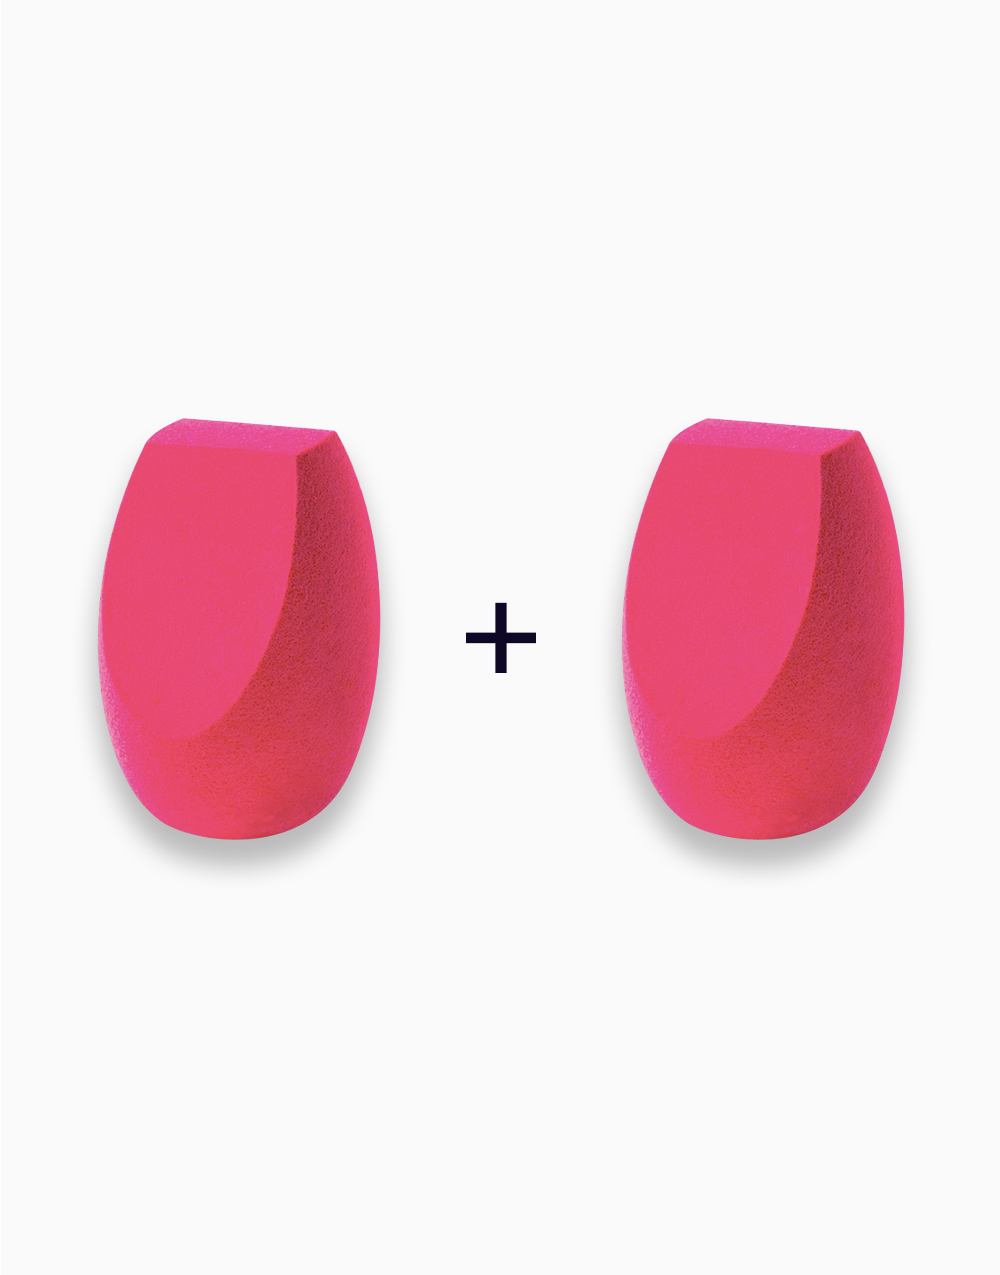 Airbrush Finish Sponge (Buy 1, Take 1) by PRO STUDIO Beauty Exclusives